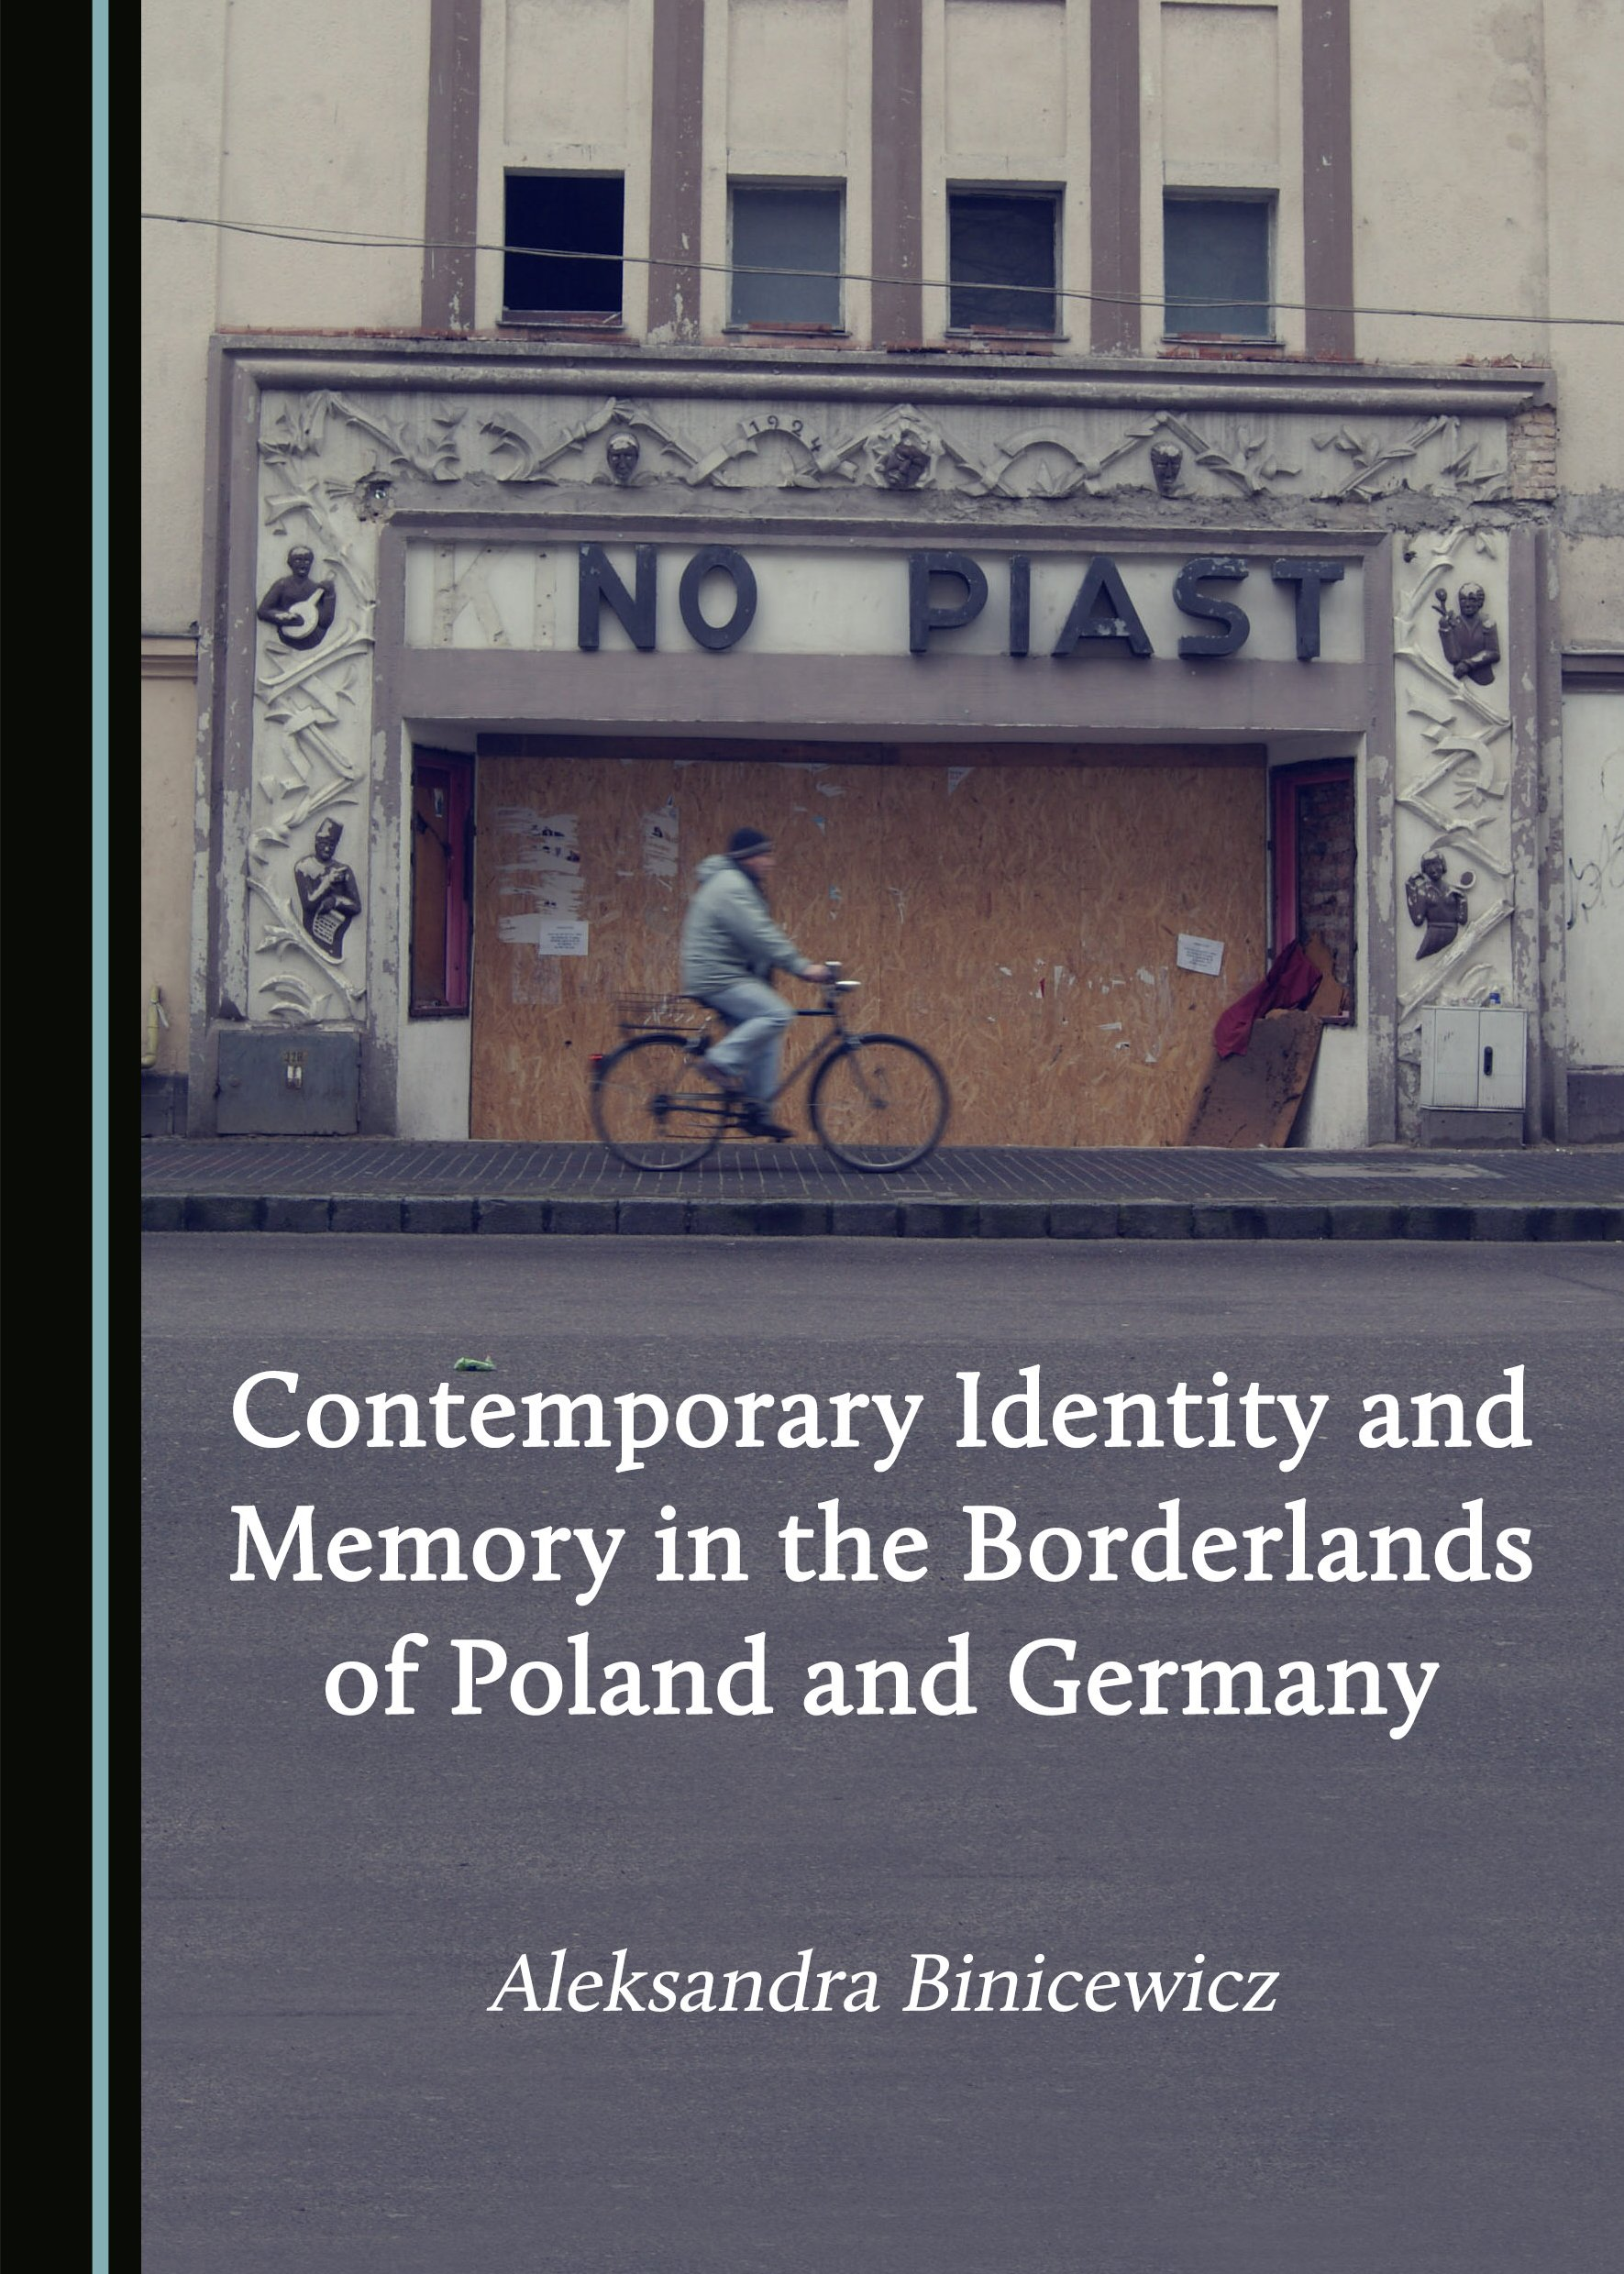 Contemporary Identity and Memory in the Borderlands of Poland and Germany